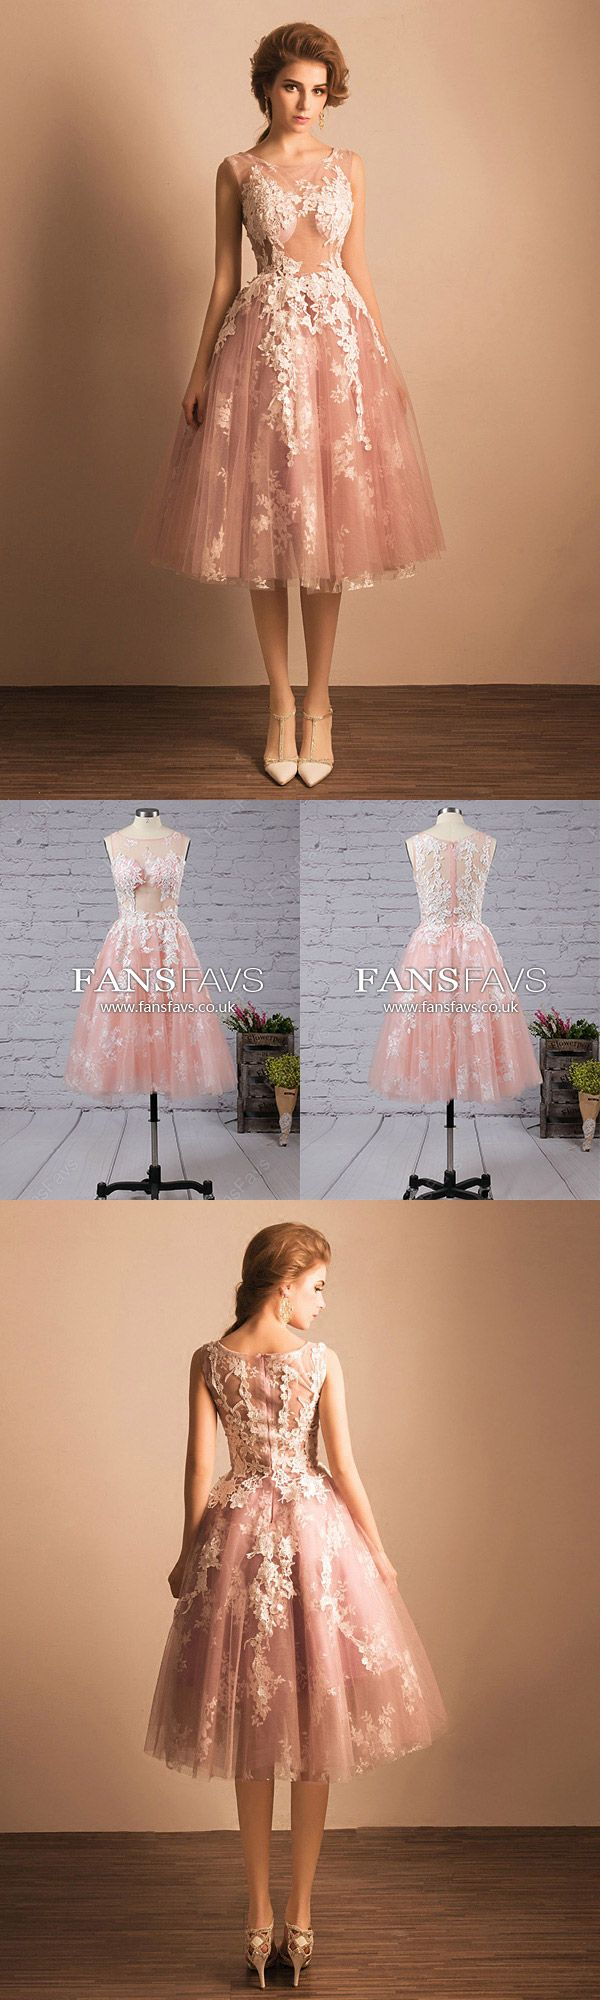 Vintage prom dresses lacetealength homecoming dresses sleeveless